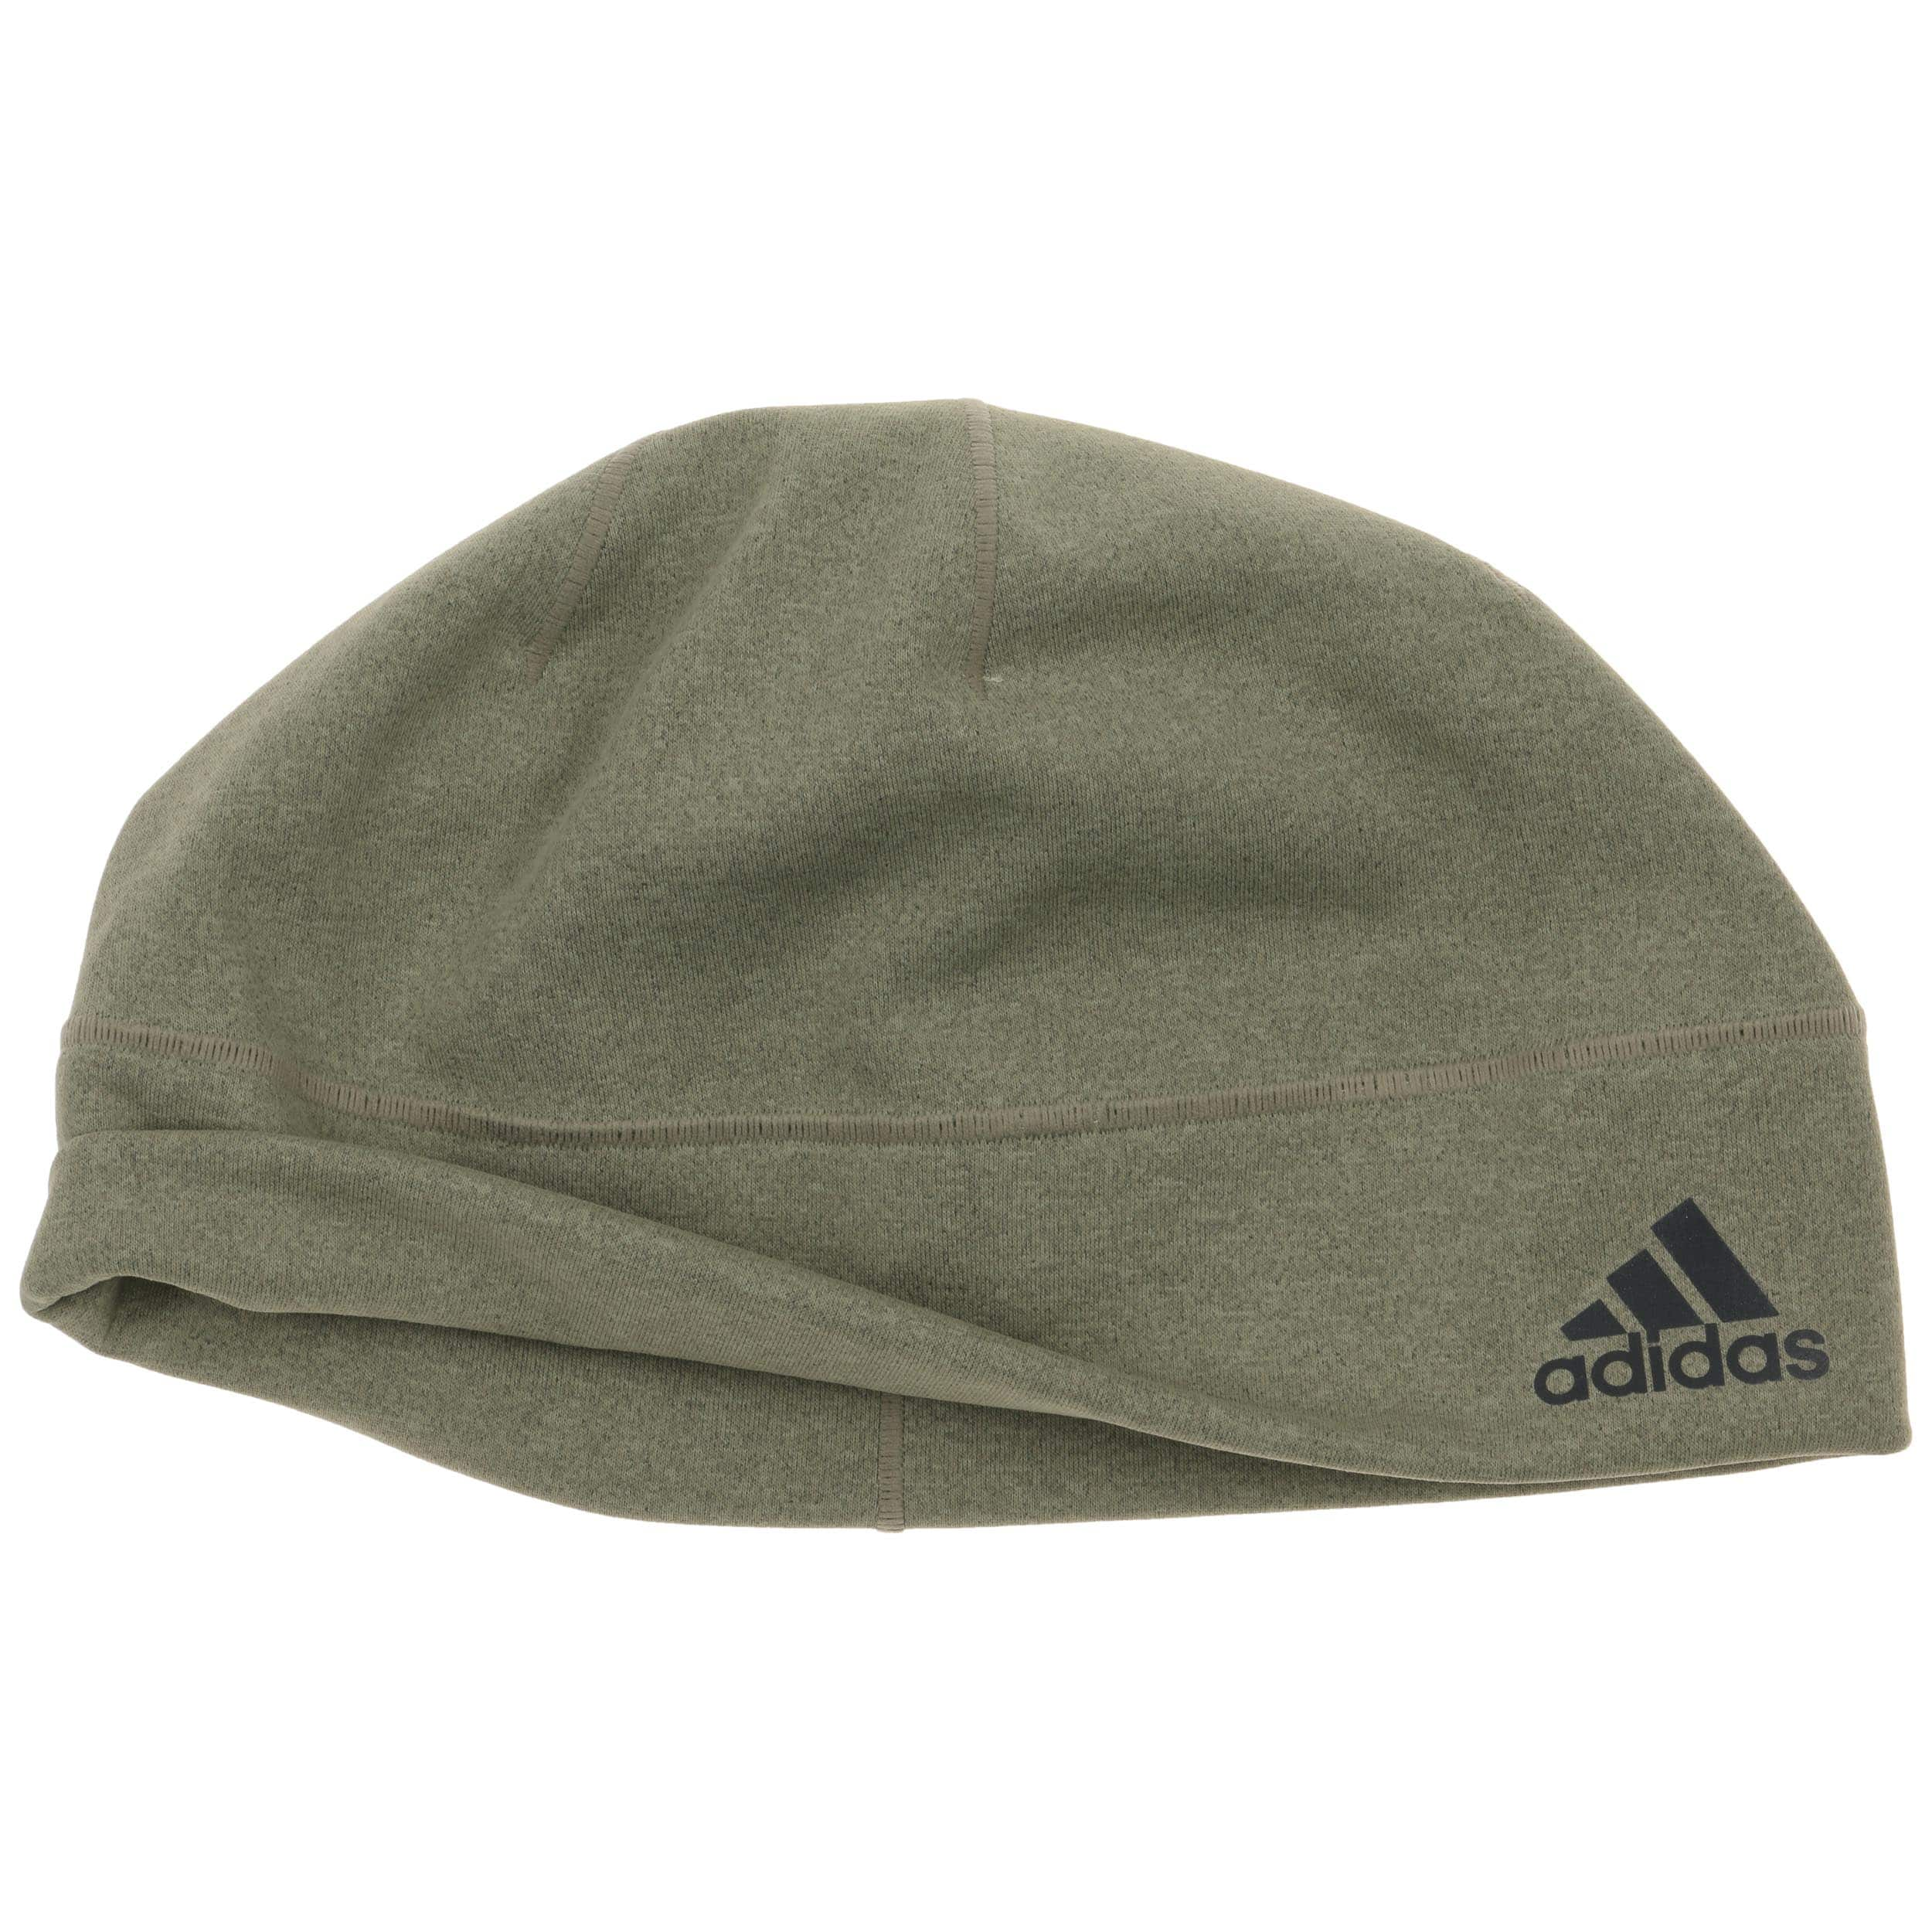 22f89df61ef0 ... Bonnet Beanie Climaheat Performance by adidas - olive 1 ...